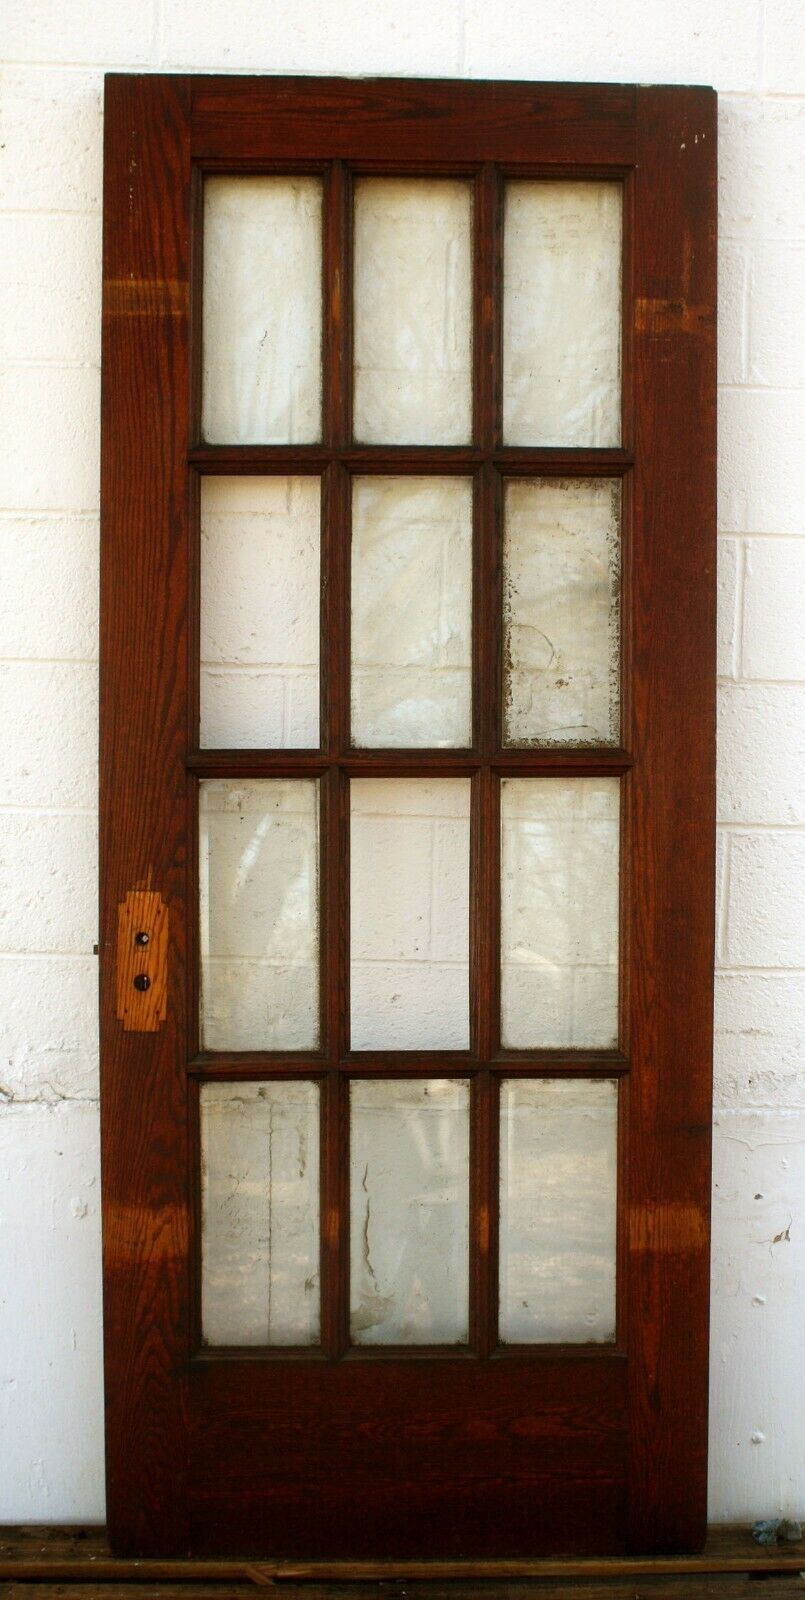 32 X80 X1 75 Antique Vintage Oak Wood Wooden French Door 12 Window Beveled Glass Wooden French Doors Antique French Doors Beveled Glass